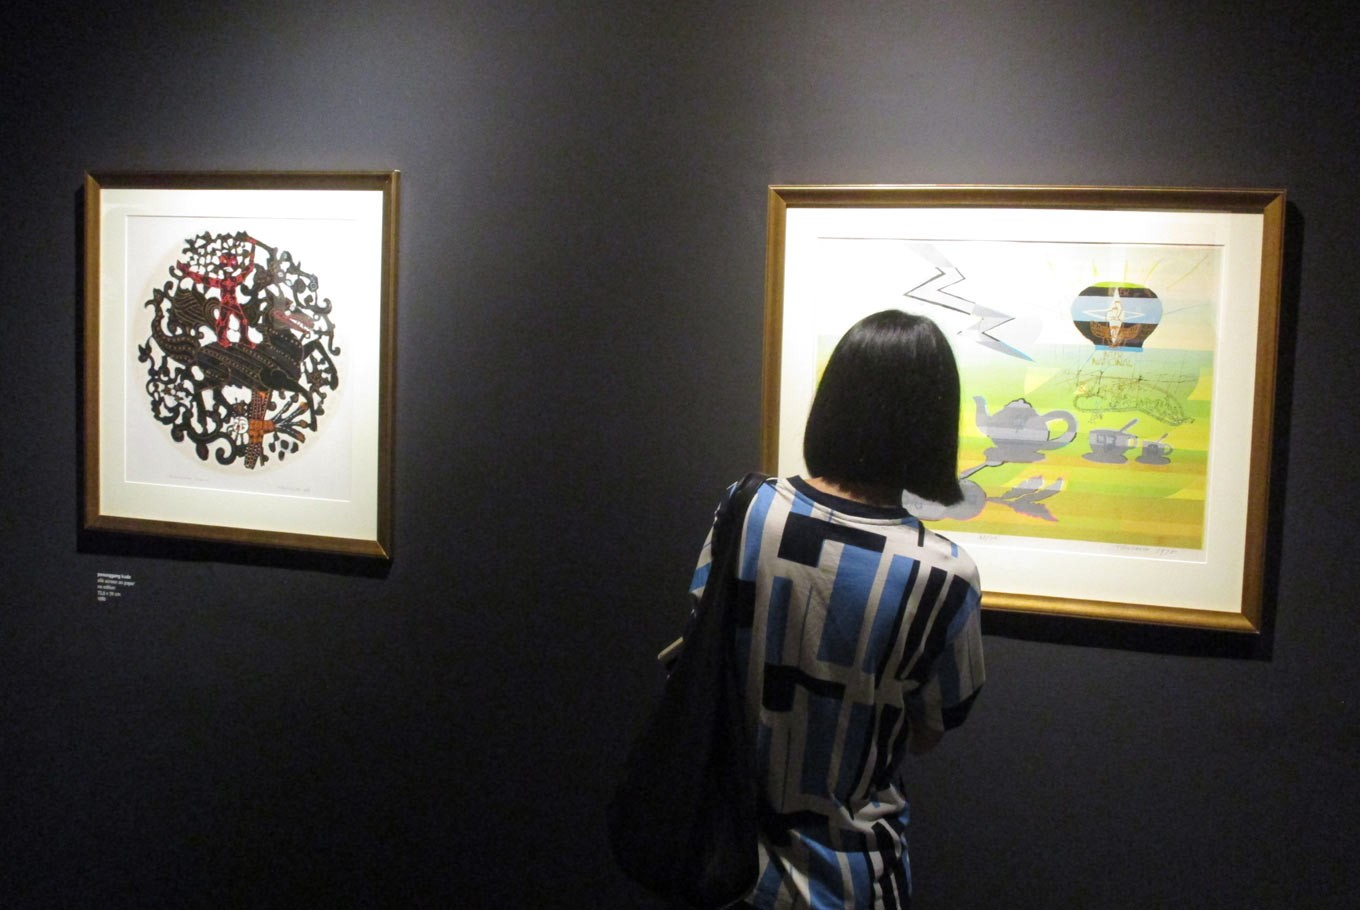 Highlighting Indonesian culture by revisiting the past, glimpsing the future